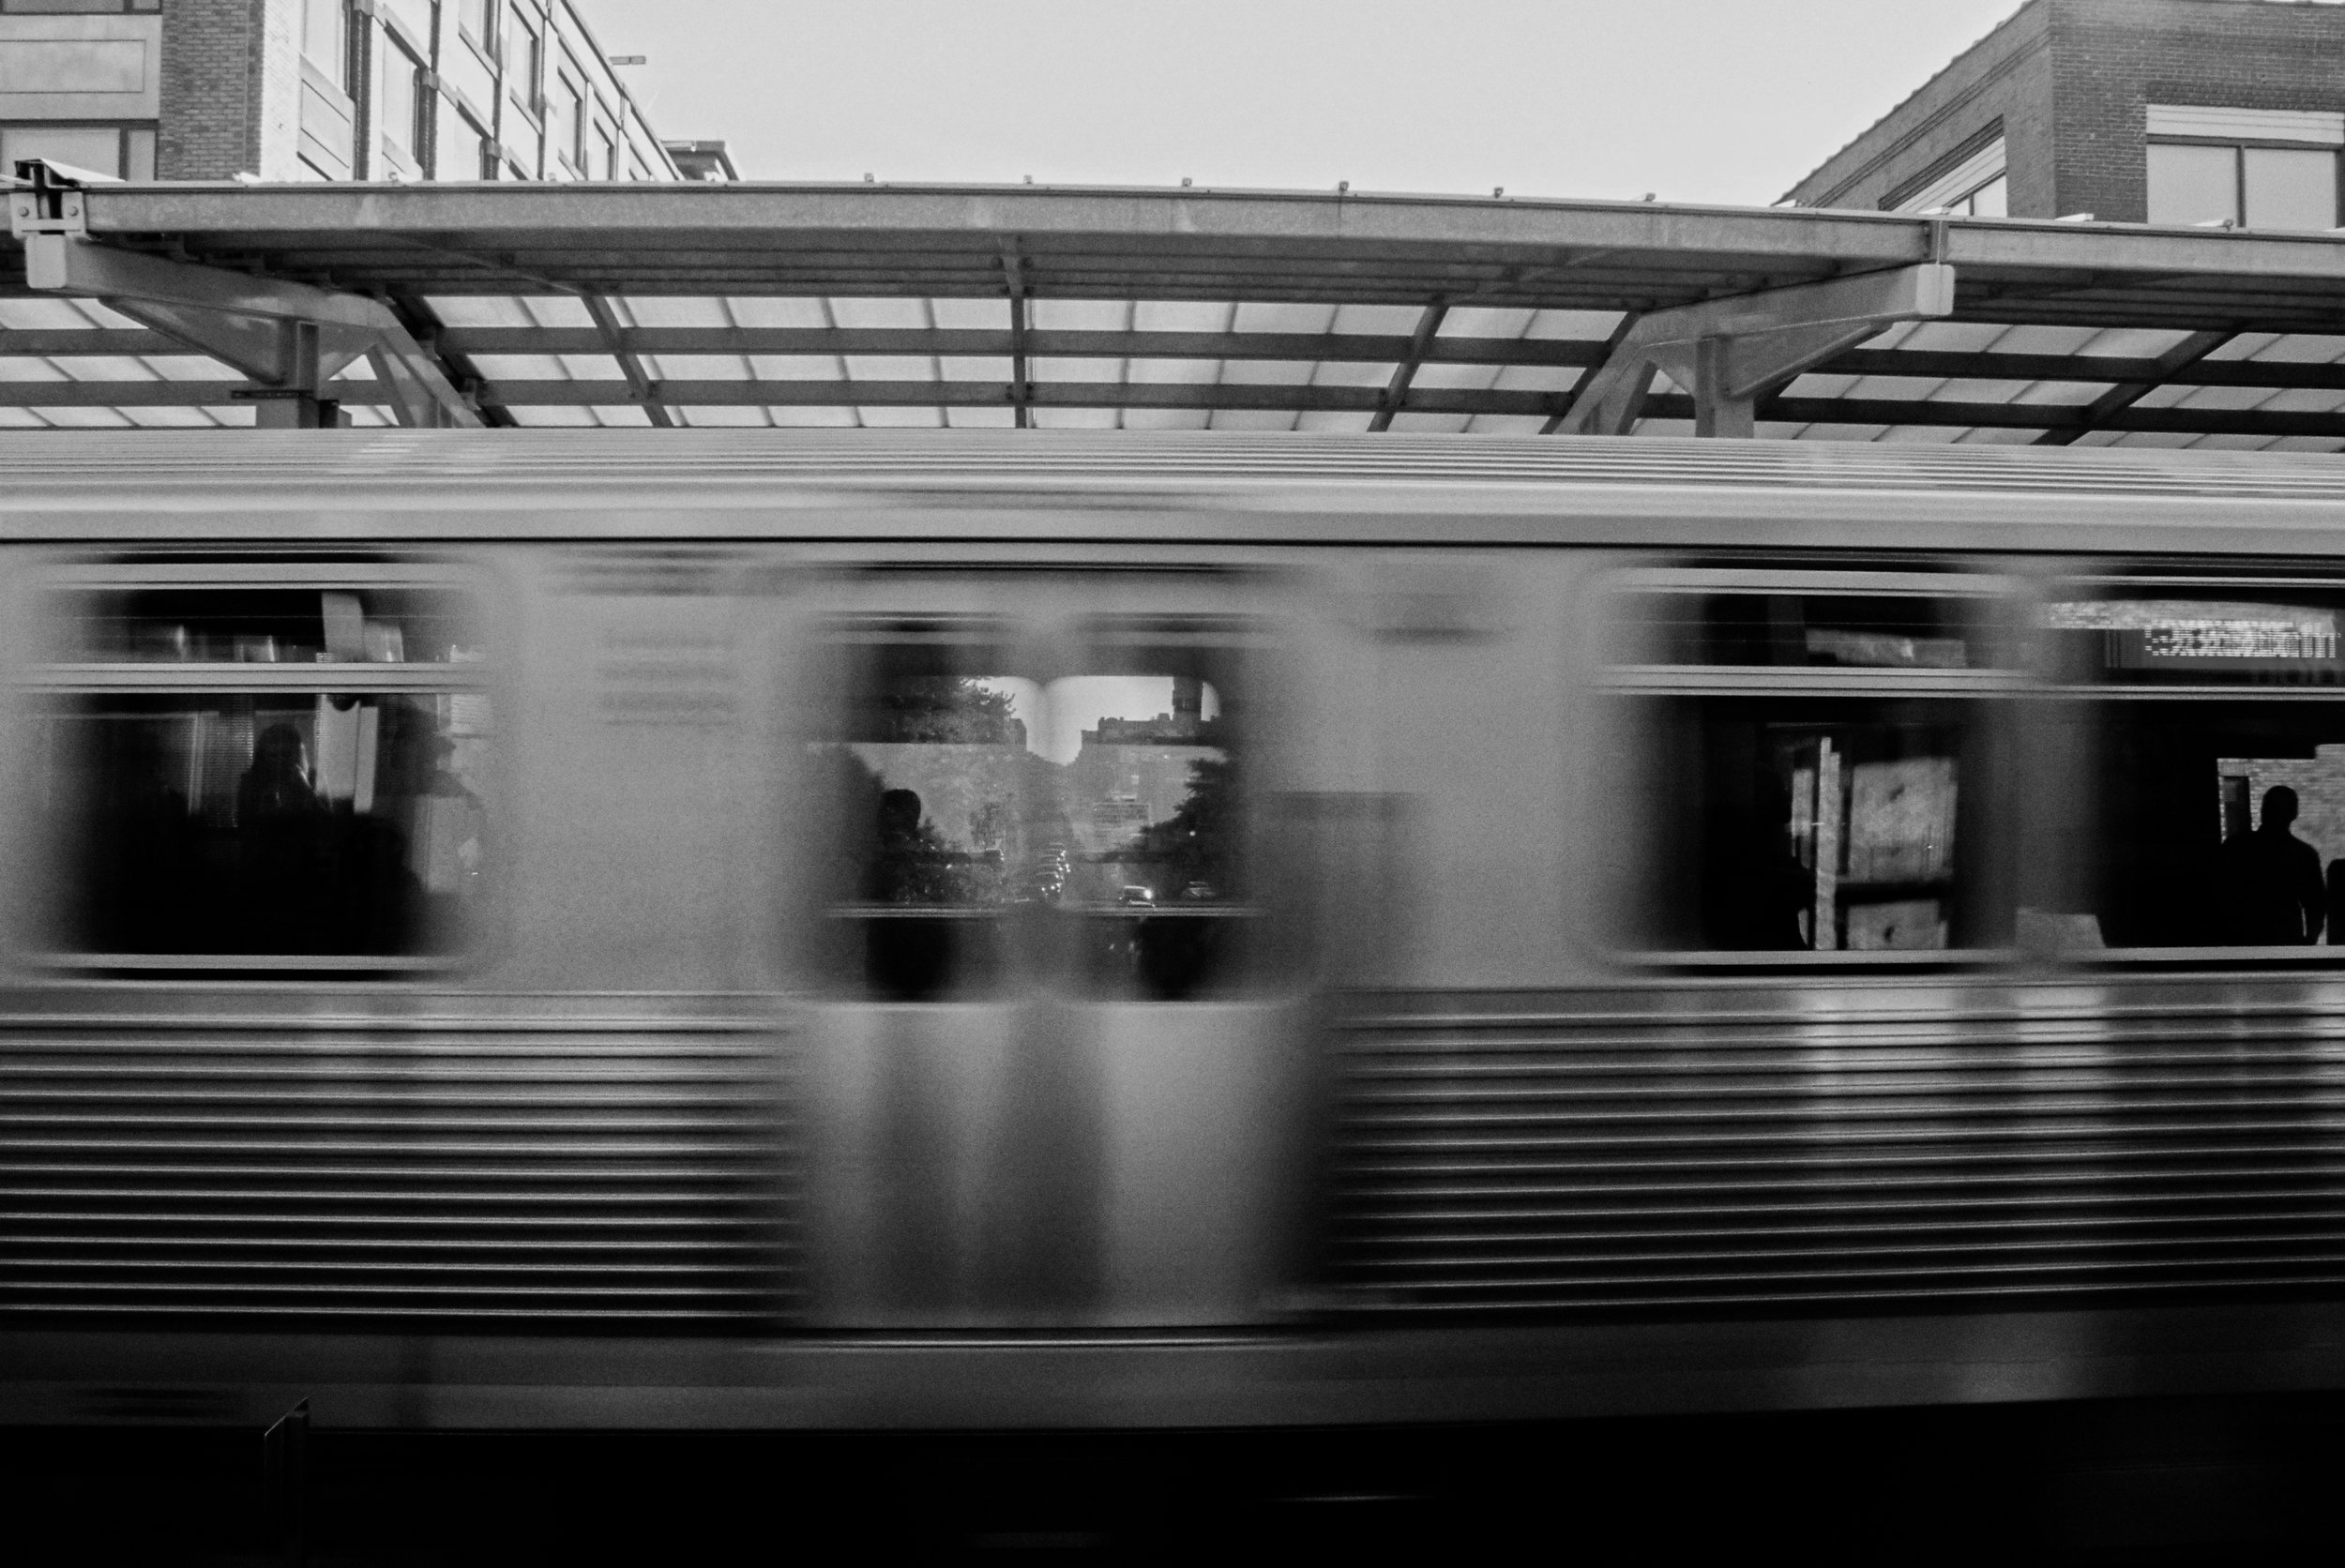 A3 Print (35MM)    Title: Transit    Location: Chicago, USA    Price: 100 Euros/150 Dollars (CAD) Plus shipping/handling